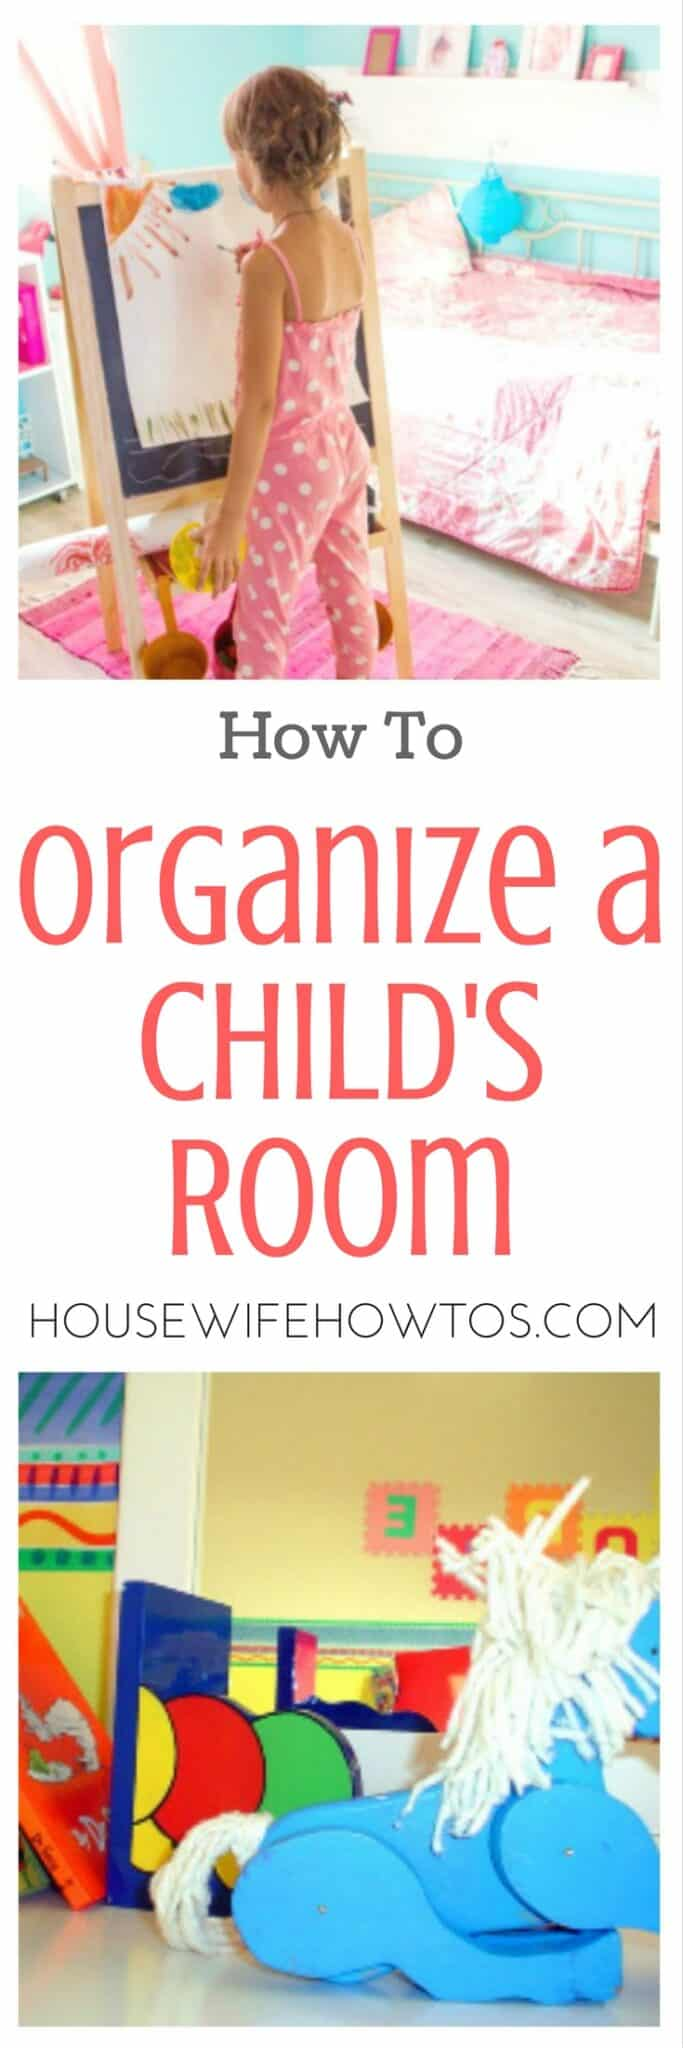 How to organize a child's room | Clear advice on how to organize a child's room plus a checklist to get it done. #cleaningchecklist #organizingideas